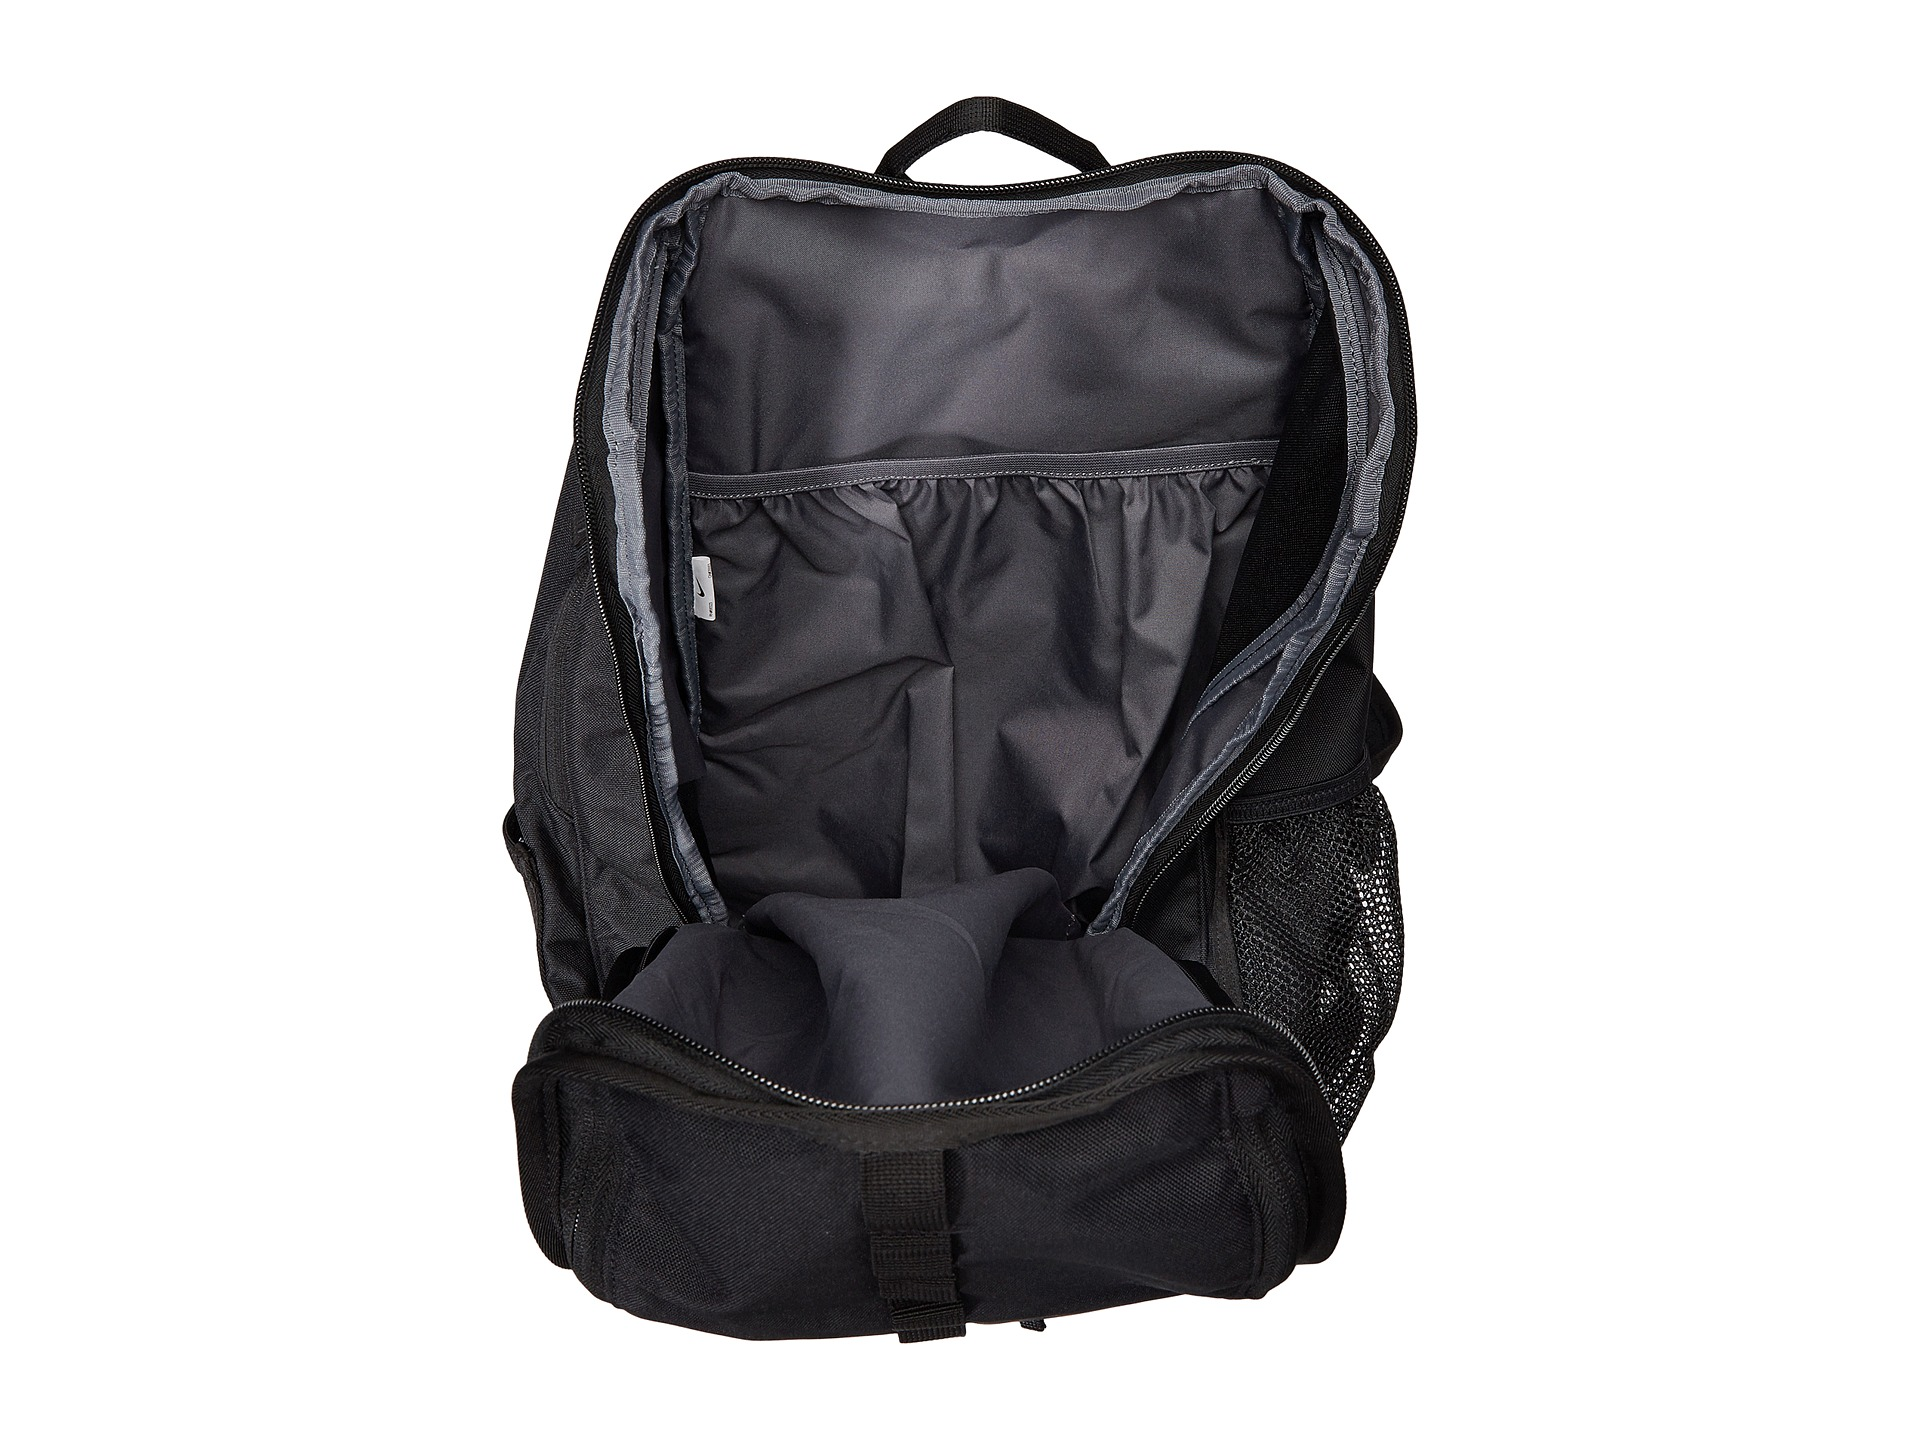 Buy nike backpack large   OFF72% Discounted 91c20a4f15ba4